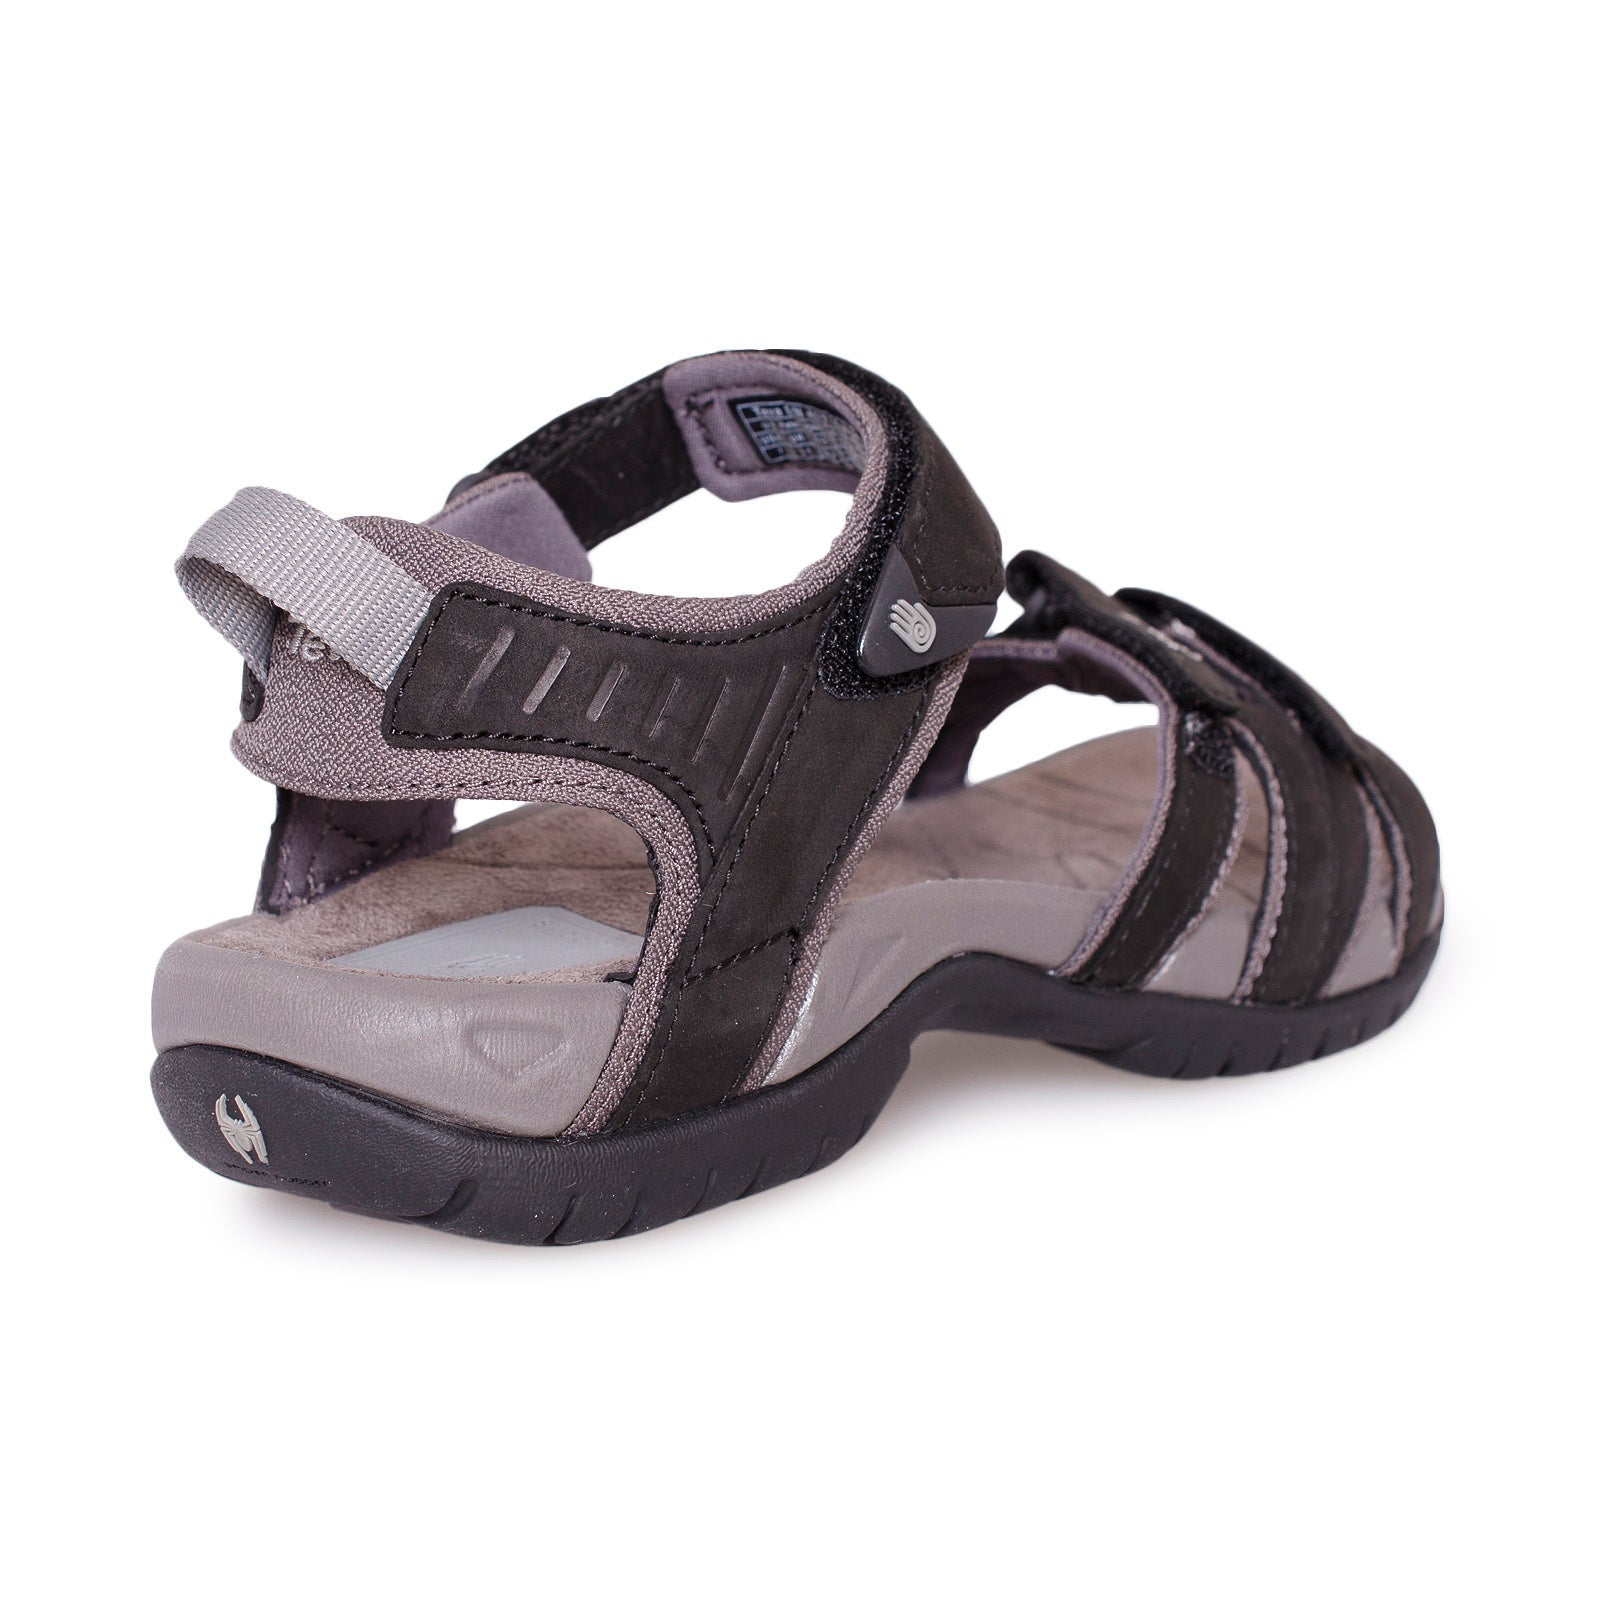 c1bf141c1cb47f Teva Tirra Leather Black Sandals - Women s - MyCozyBoots